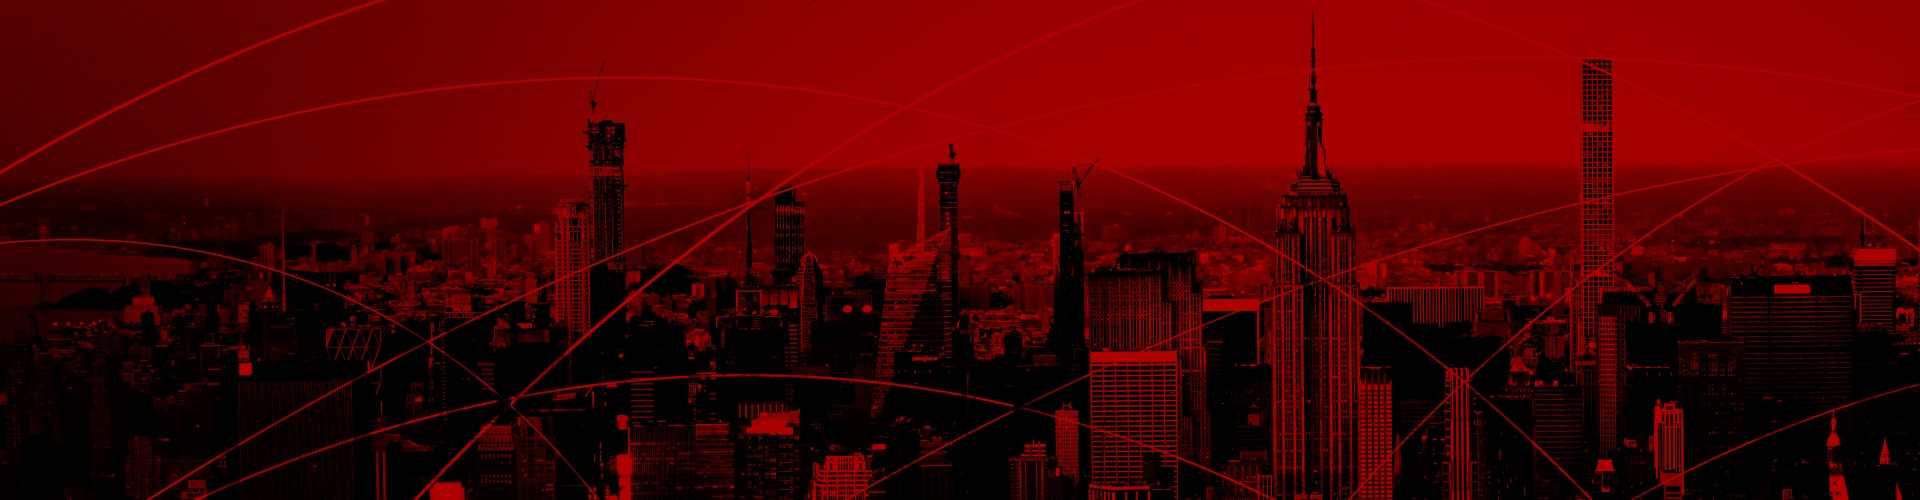 background image of cityscape with red tint